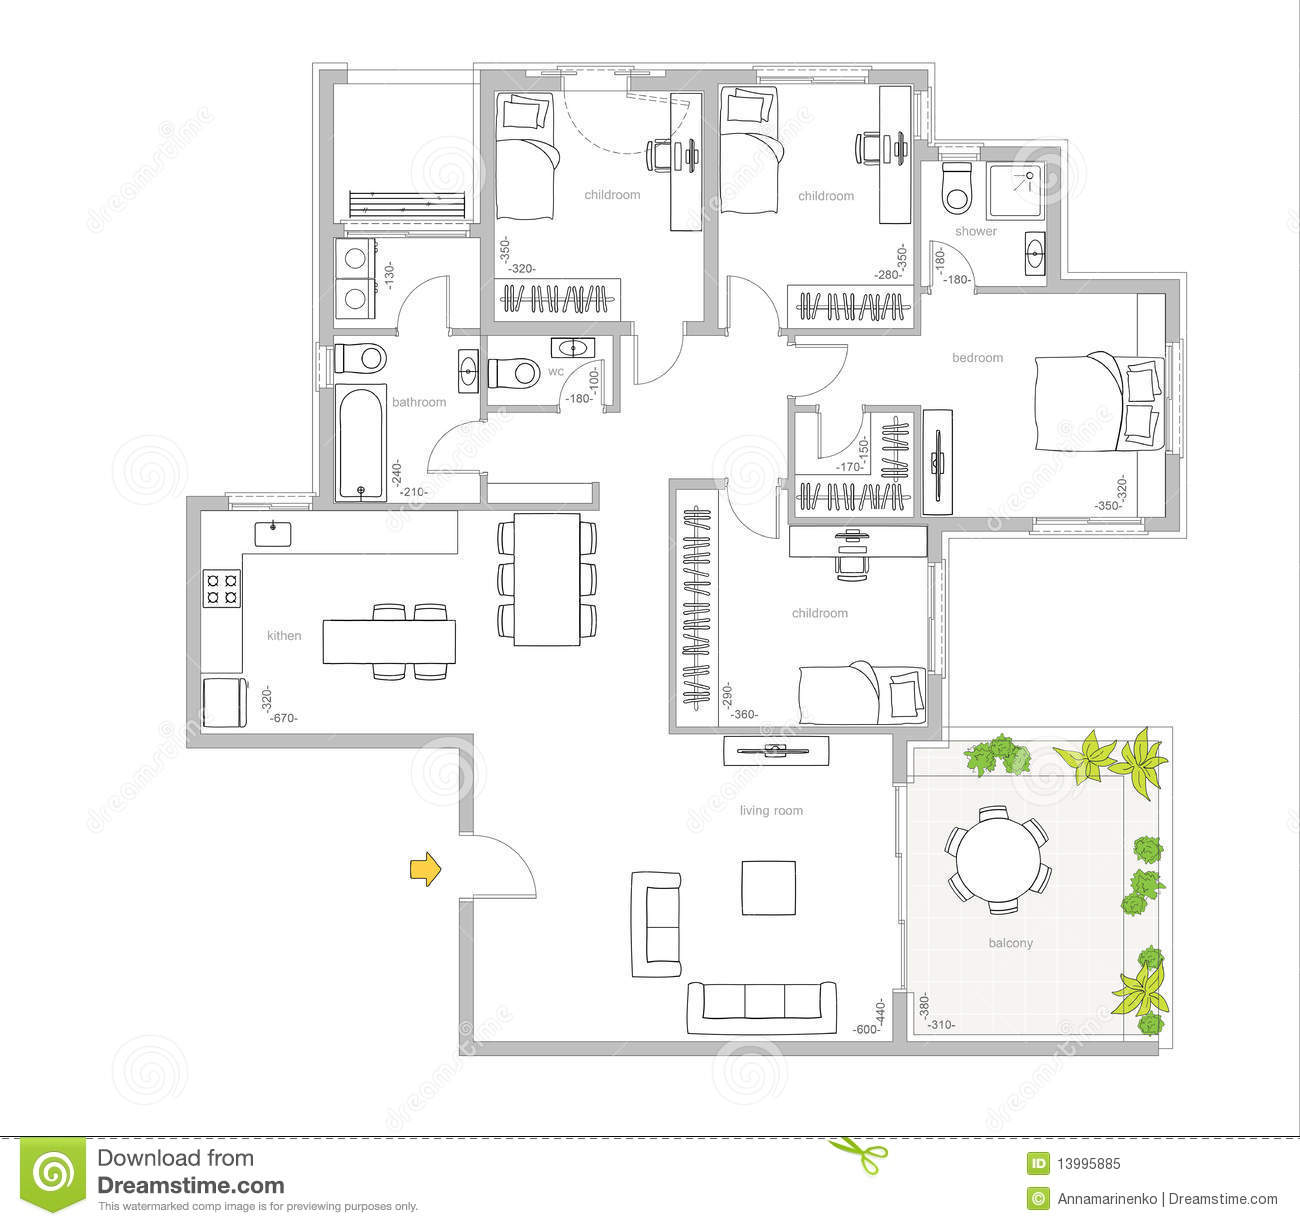 Apartments. 3D Floor Planner Home Design Software Online ...